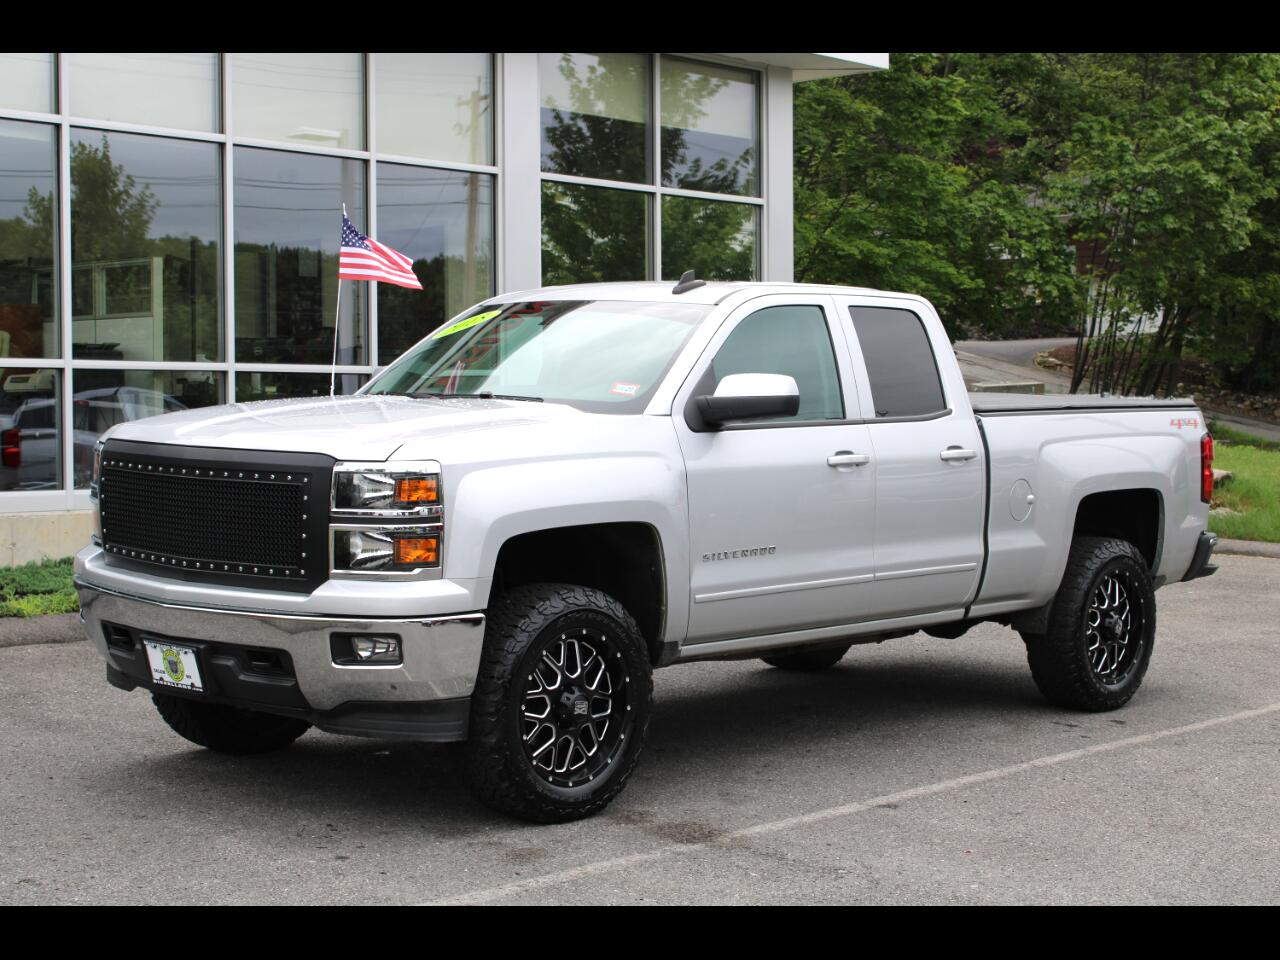 2015 Chevrolet Silverado 1500 4X4, 20 INCH XD WHEELS, BACK UP CAM, POWER OPTIONS